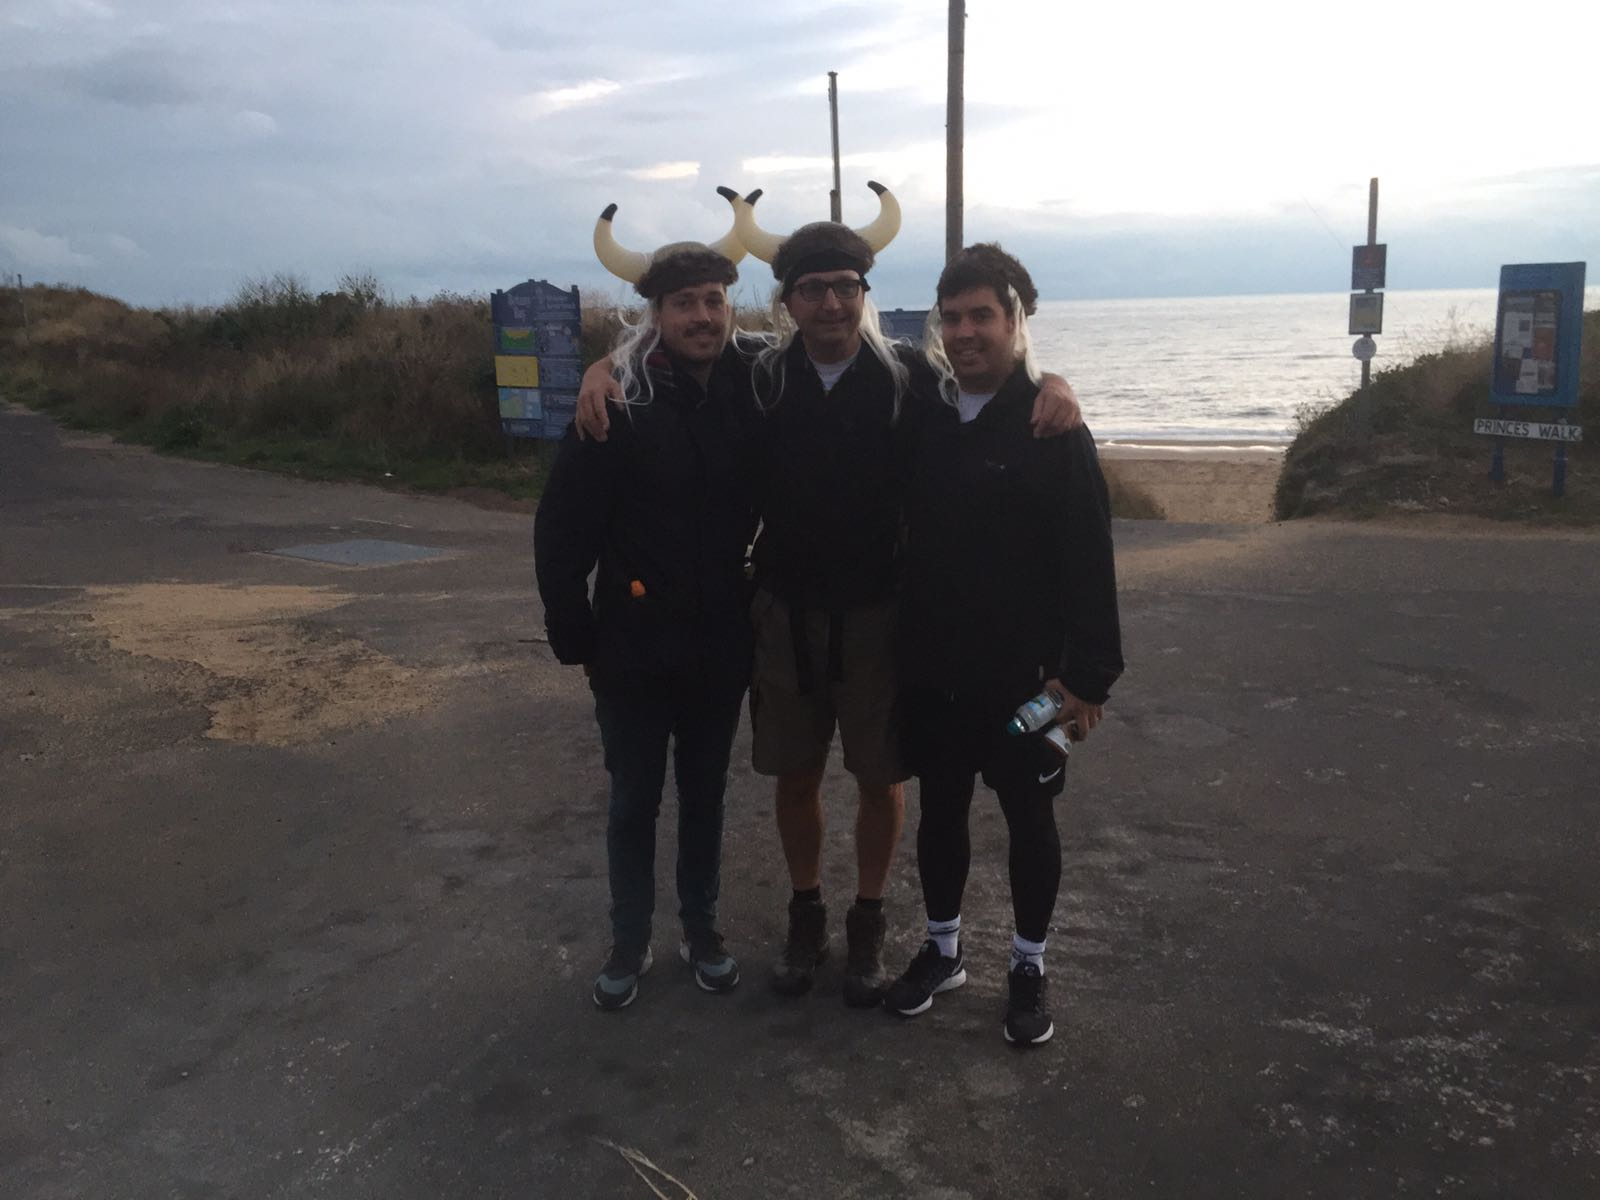 Setting off from Botany Bay at 06:30